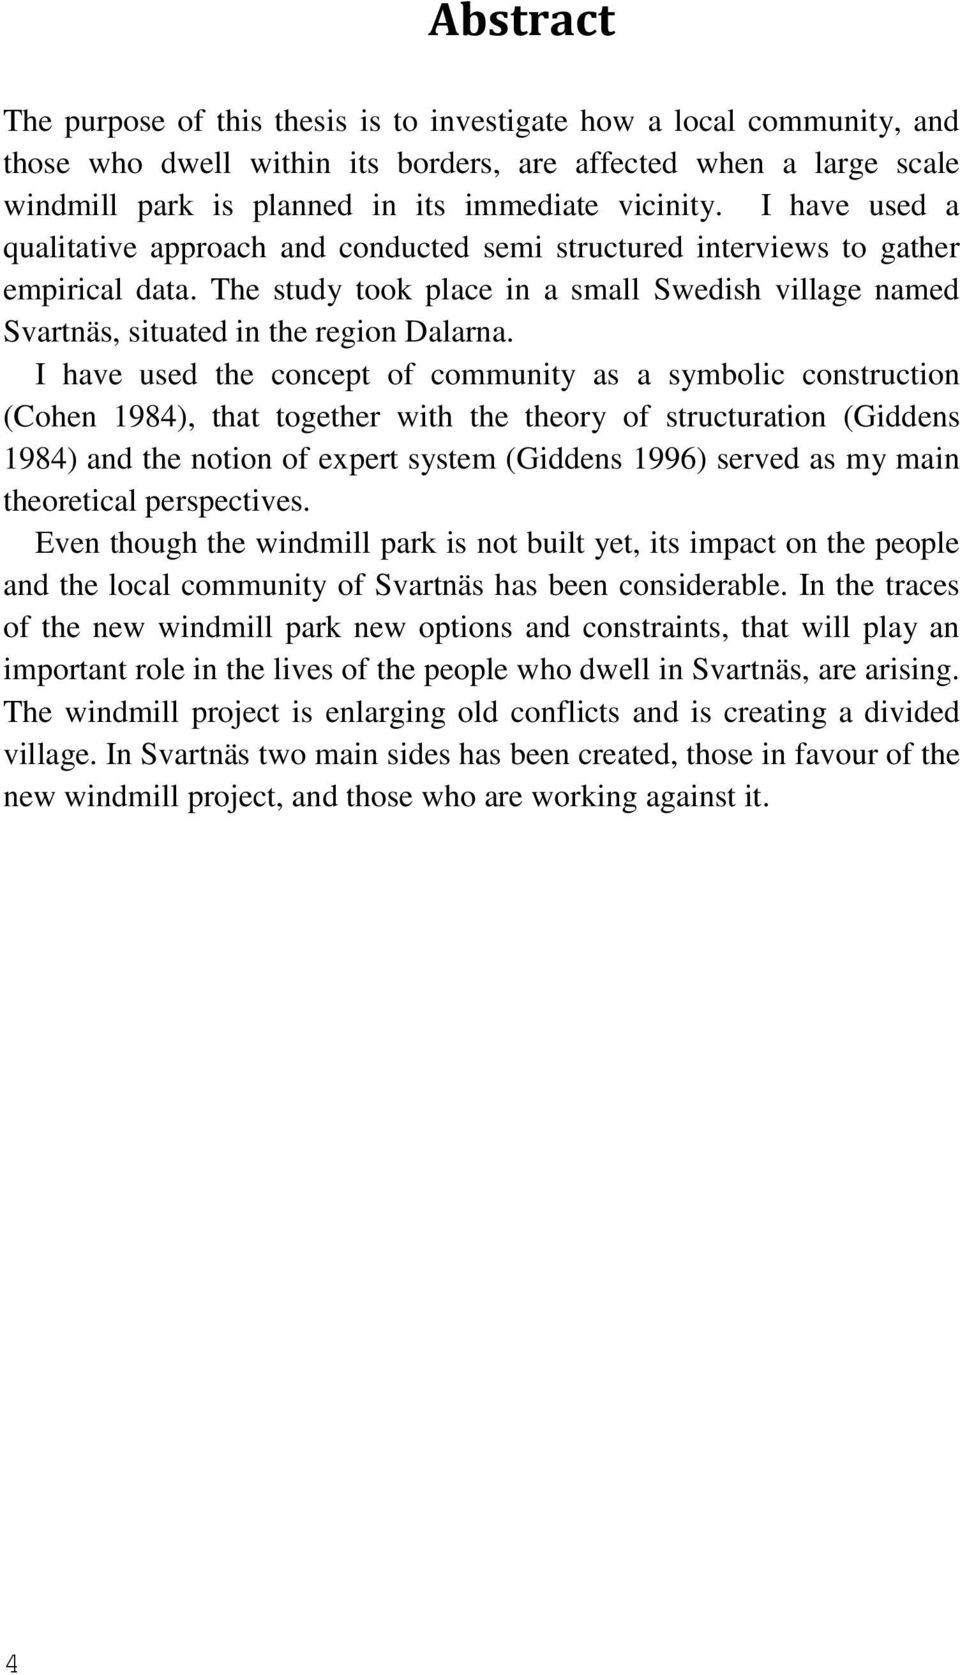 I have used the concept of community as a symbolic construction (Cohen 1984), that together with the theory of structuration (Giddens 1984) and the notion of expert system (Giddens 1996) served as my